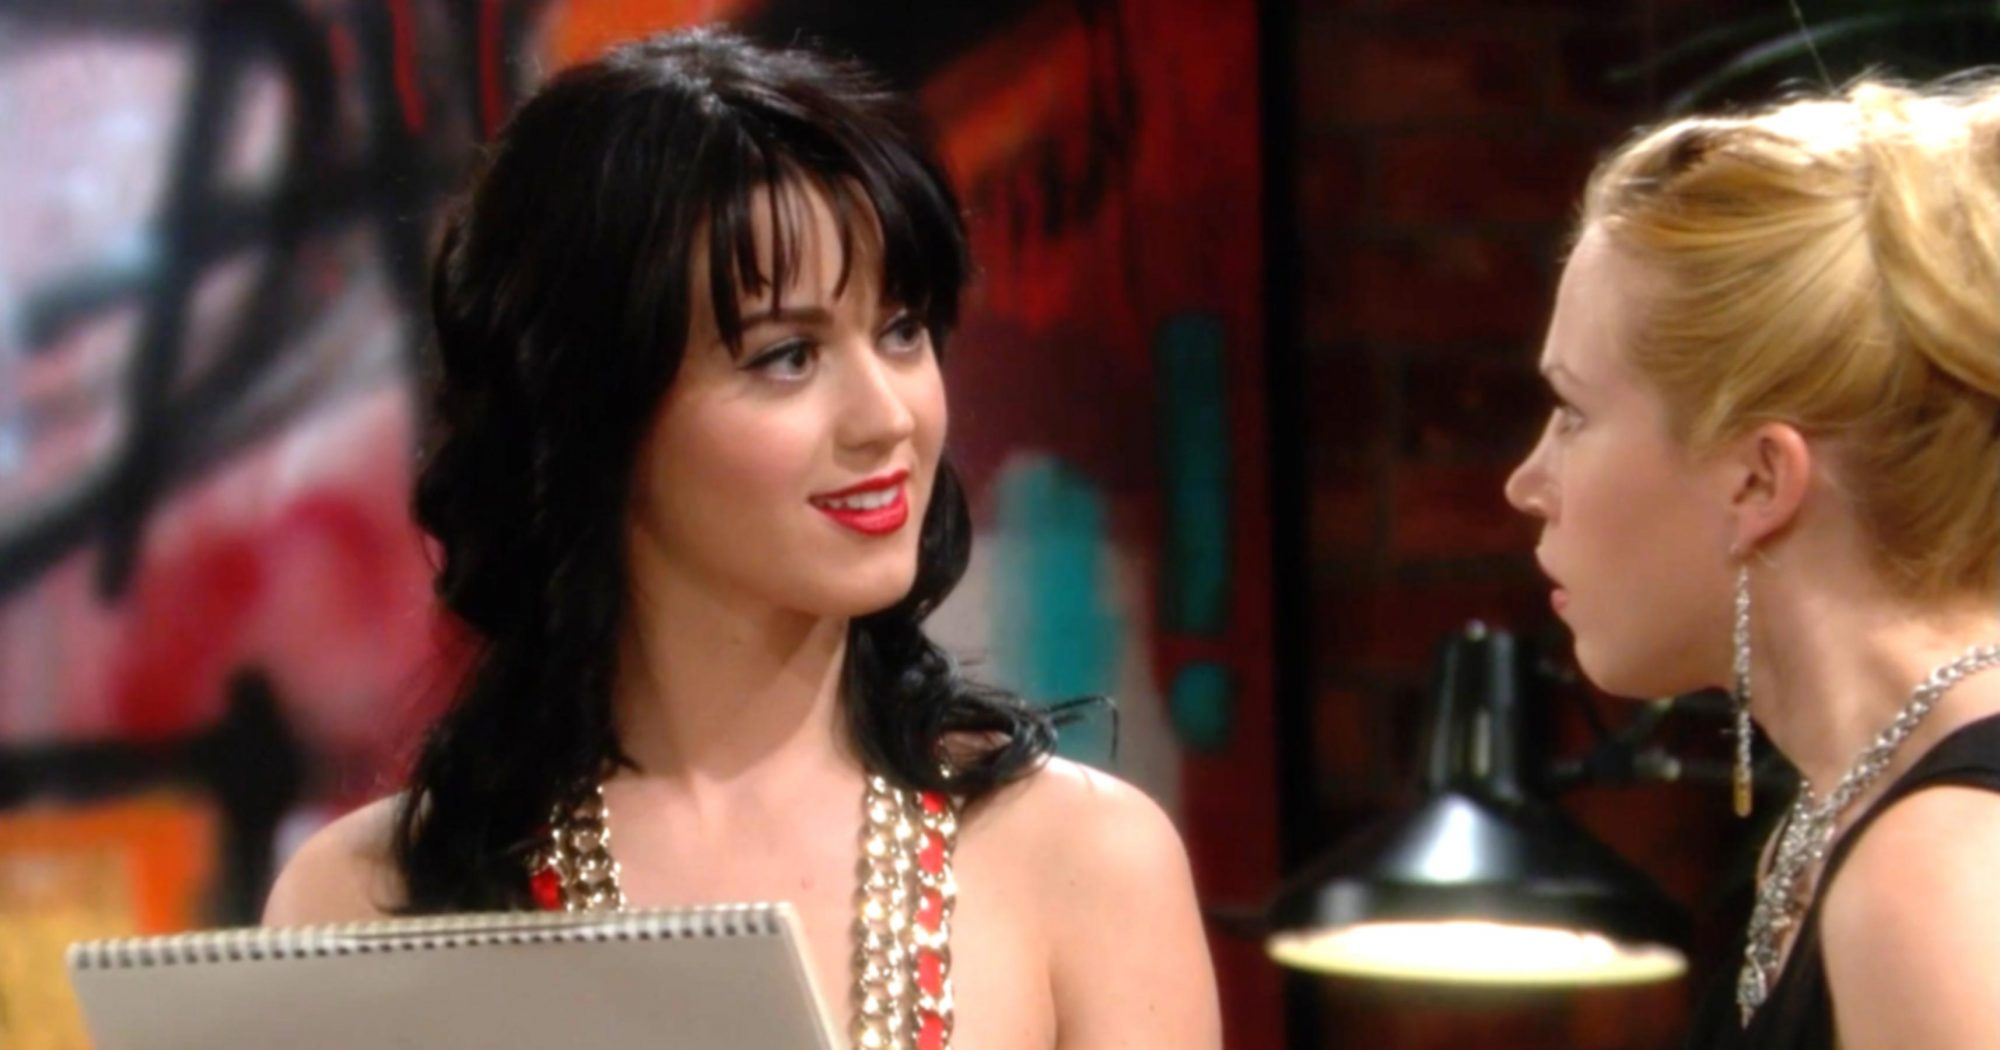 The Young and The Restless -- Pictured: Katy Perry (screen grab) CR: CBS